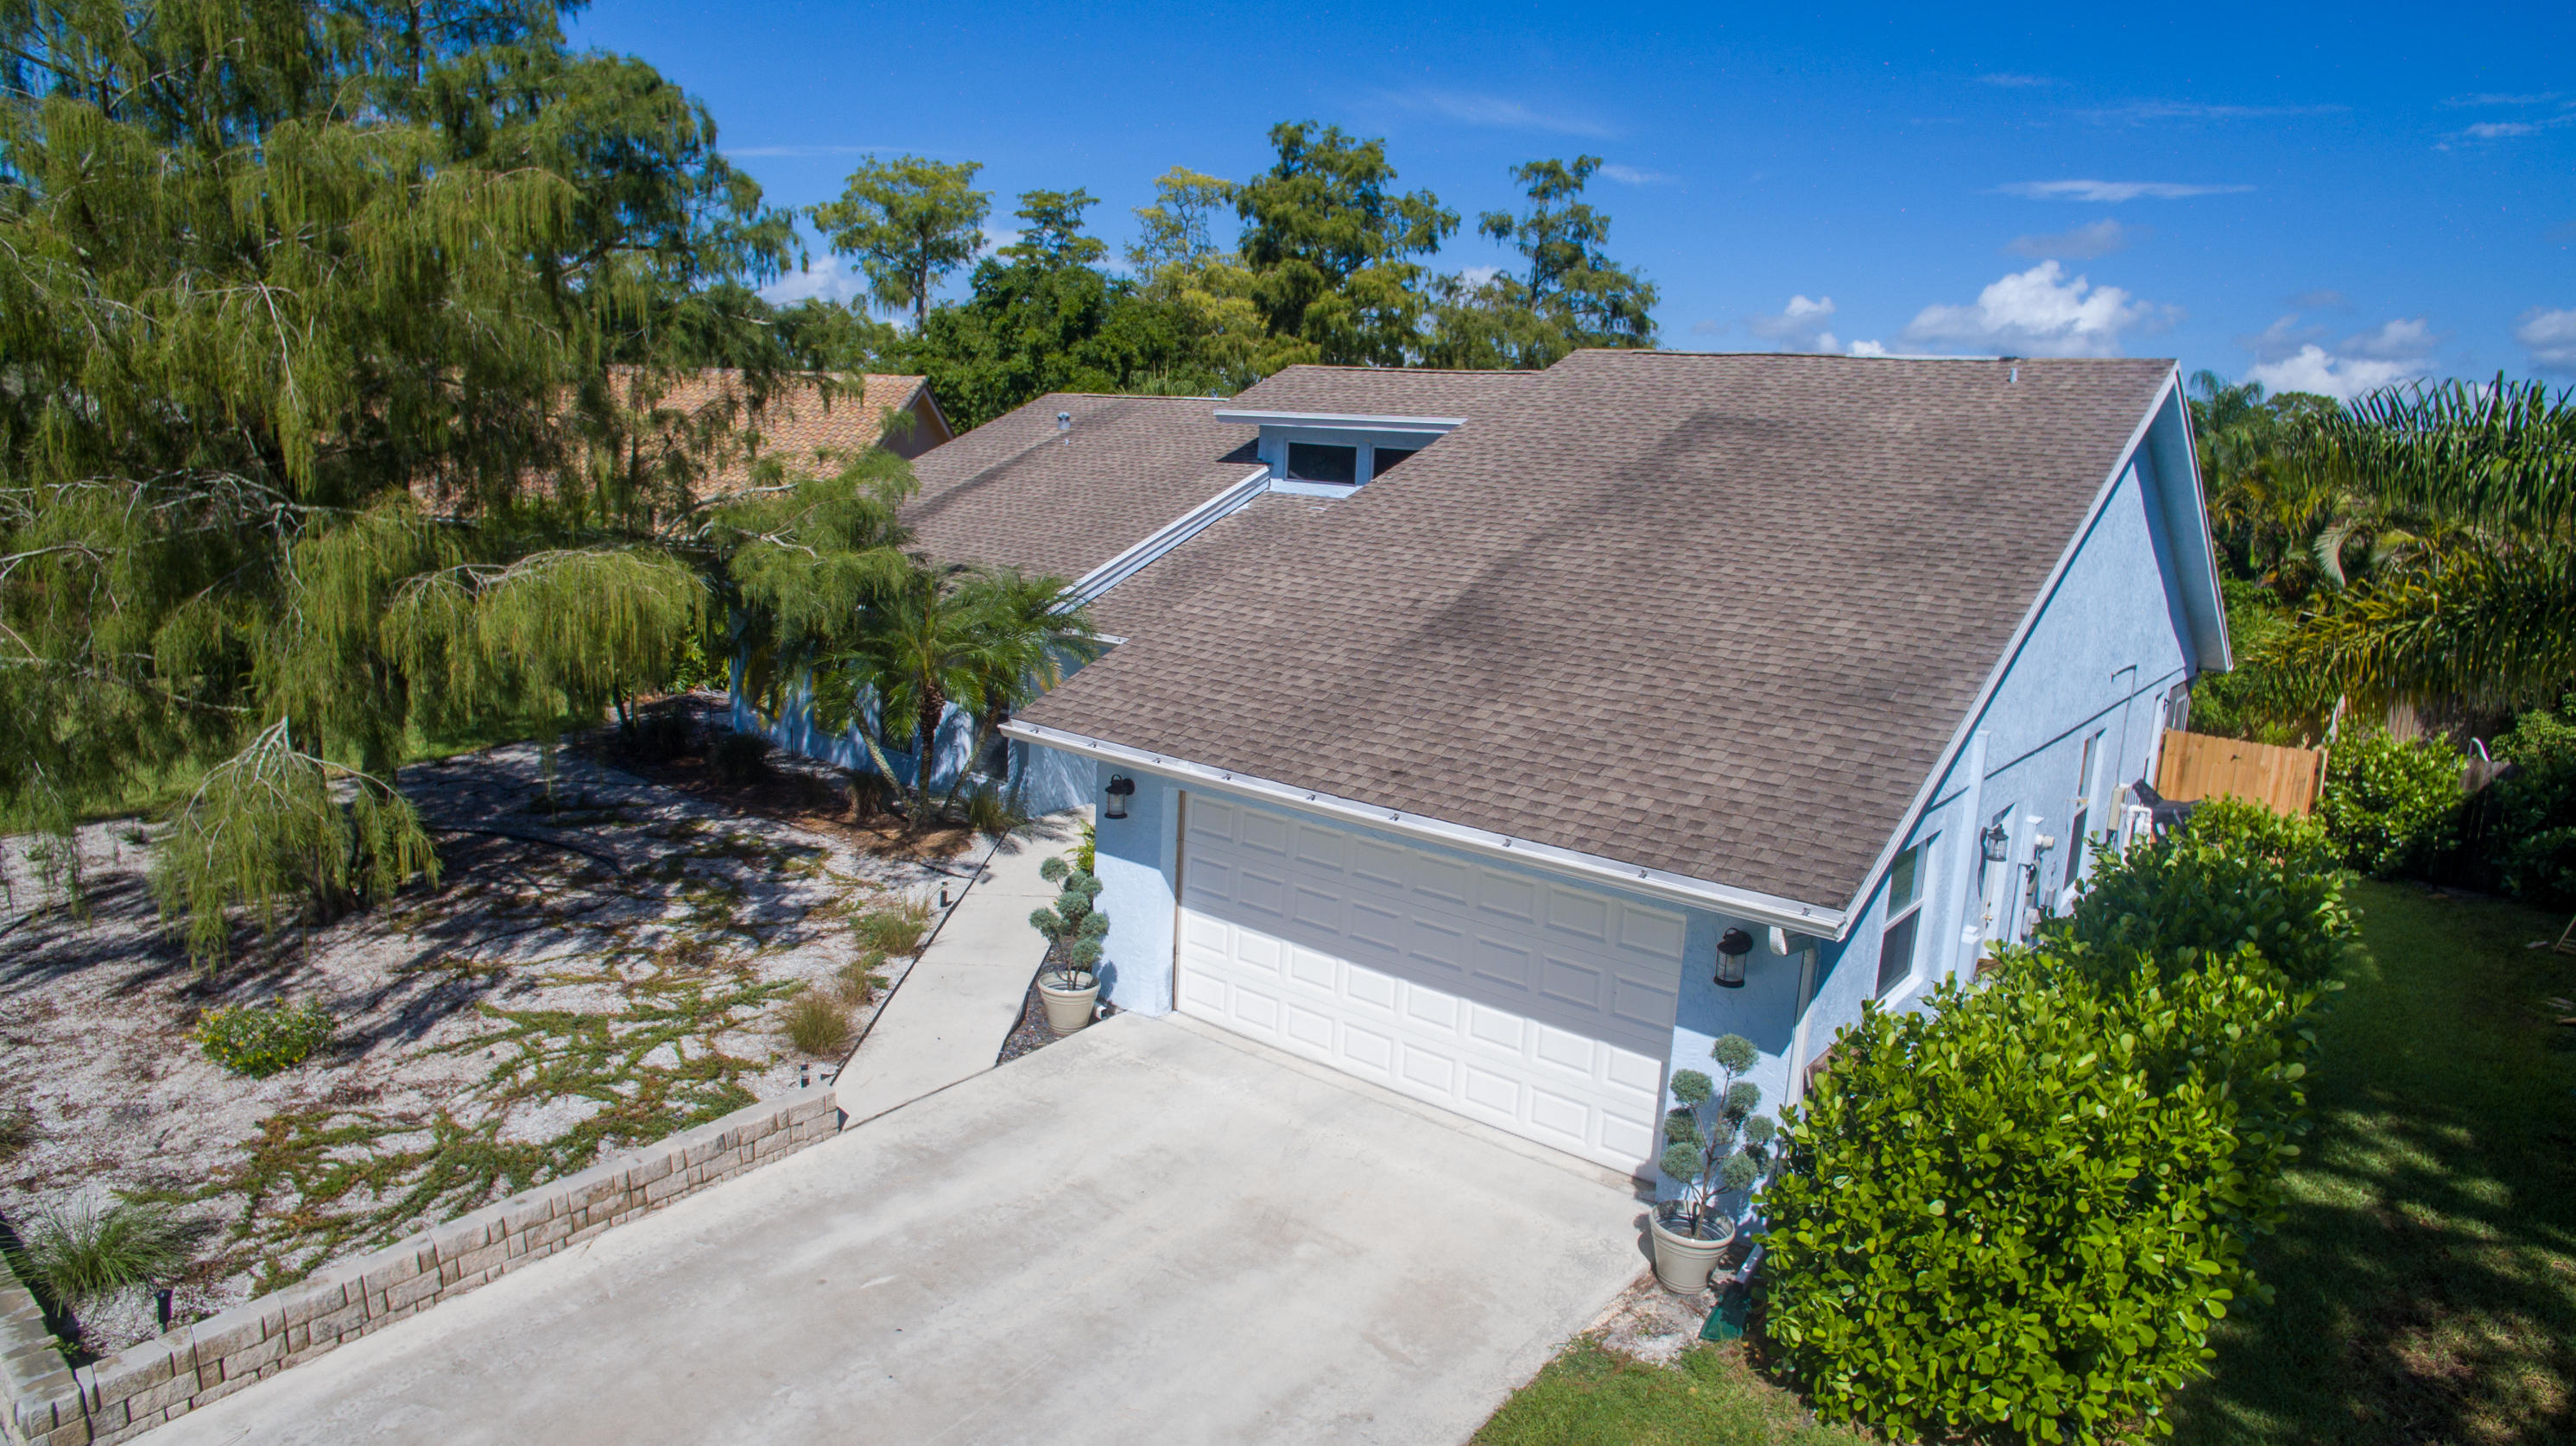 Oasis in the heart of Equestrian country.Lovely and spacious 3 bedroom 2 bath Contemporary style home in Sugar Pound Manor. Move-in ready with fresh paint, tiles and hard wood floors throughout. Private pool, fenced in backyard, beautiful landscaping and plants.